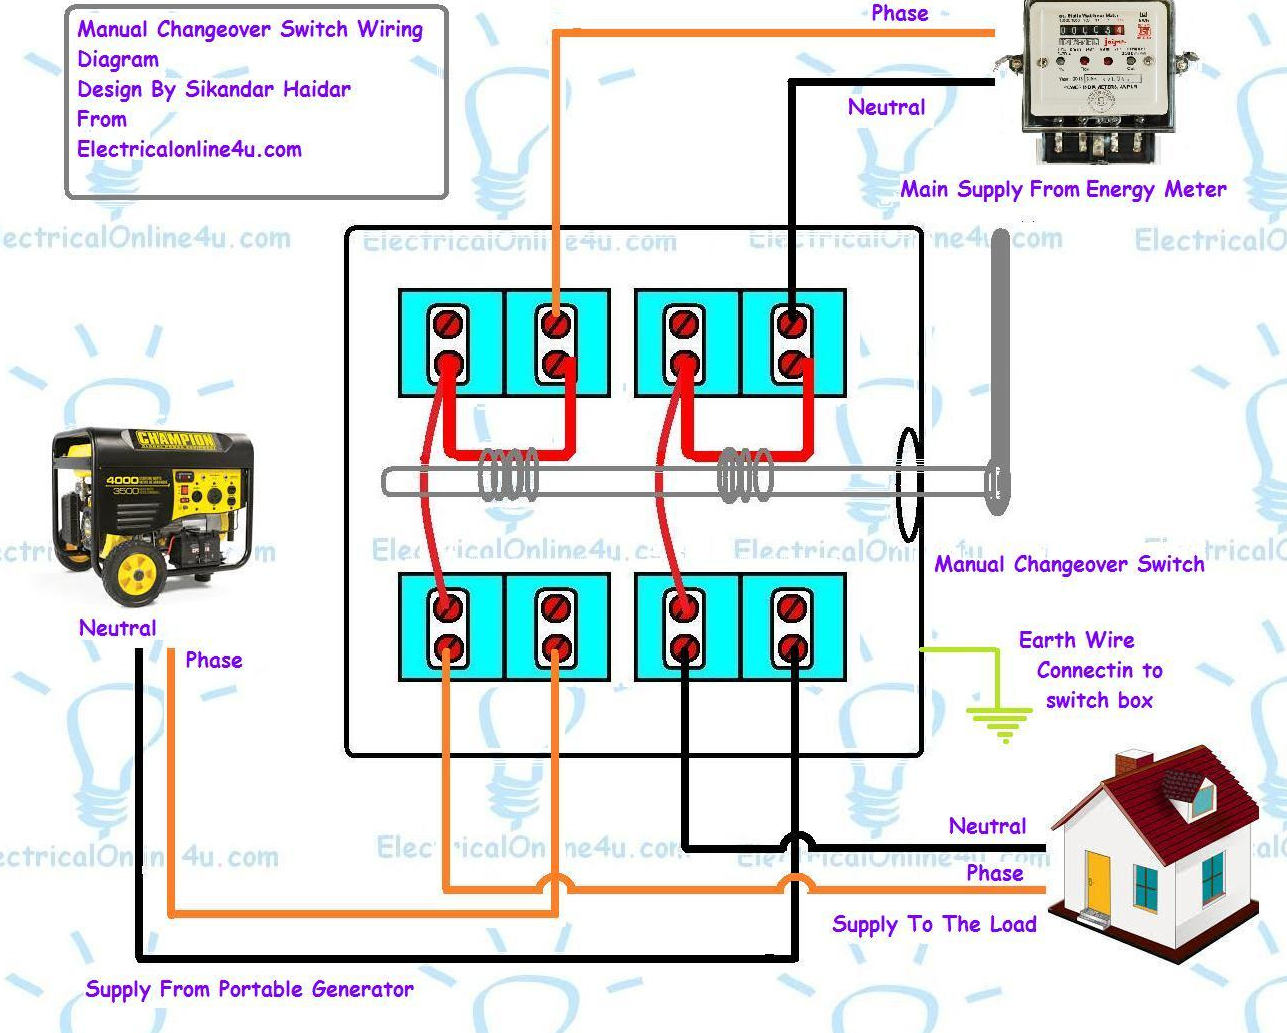 Manual changeover switch wiring diagram for portable generator ...